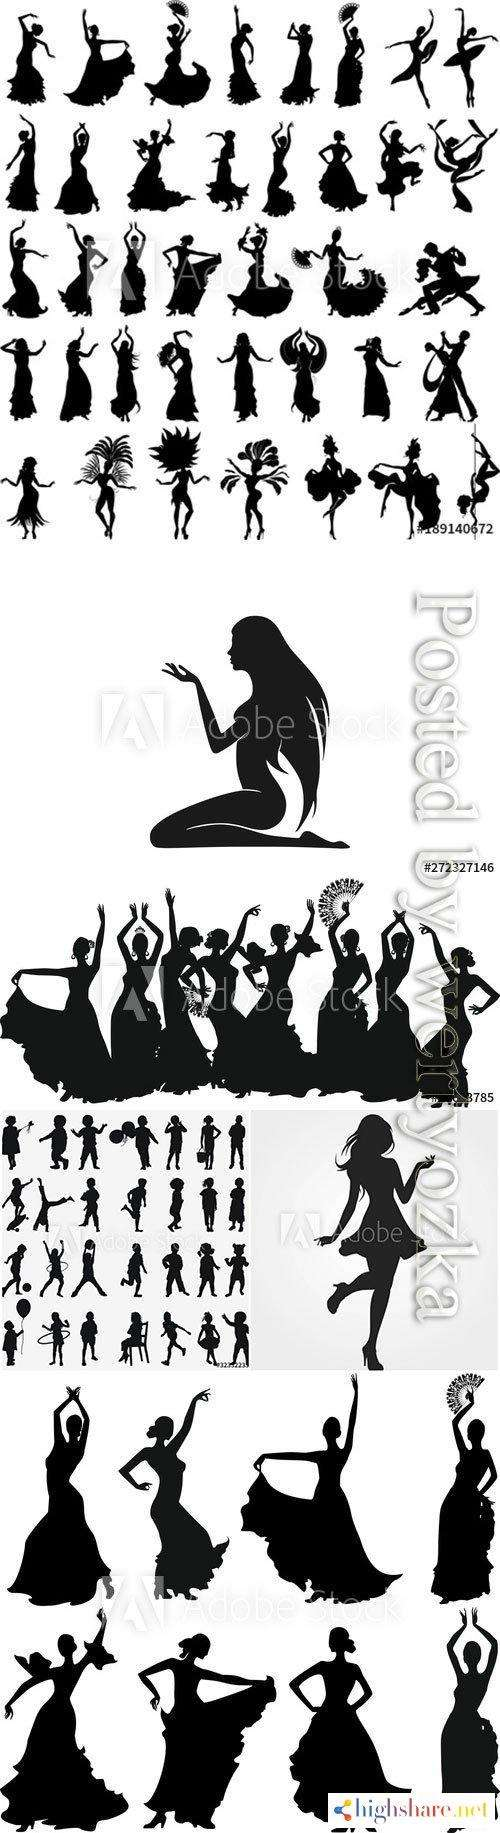 people silhouettes in vector 5f422999bce1a - People silhouettes in vector